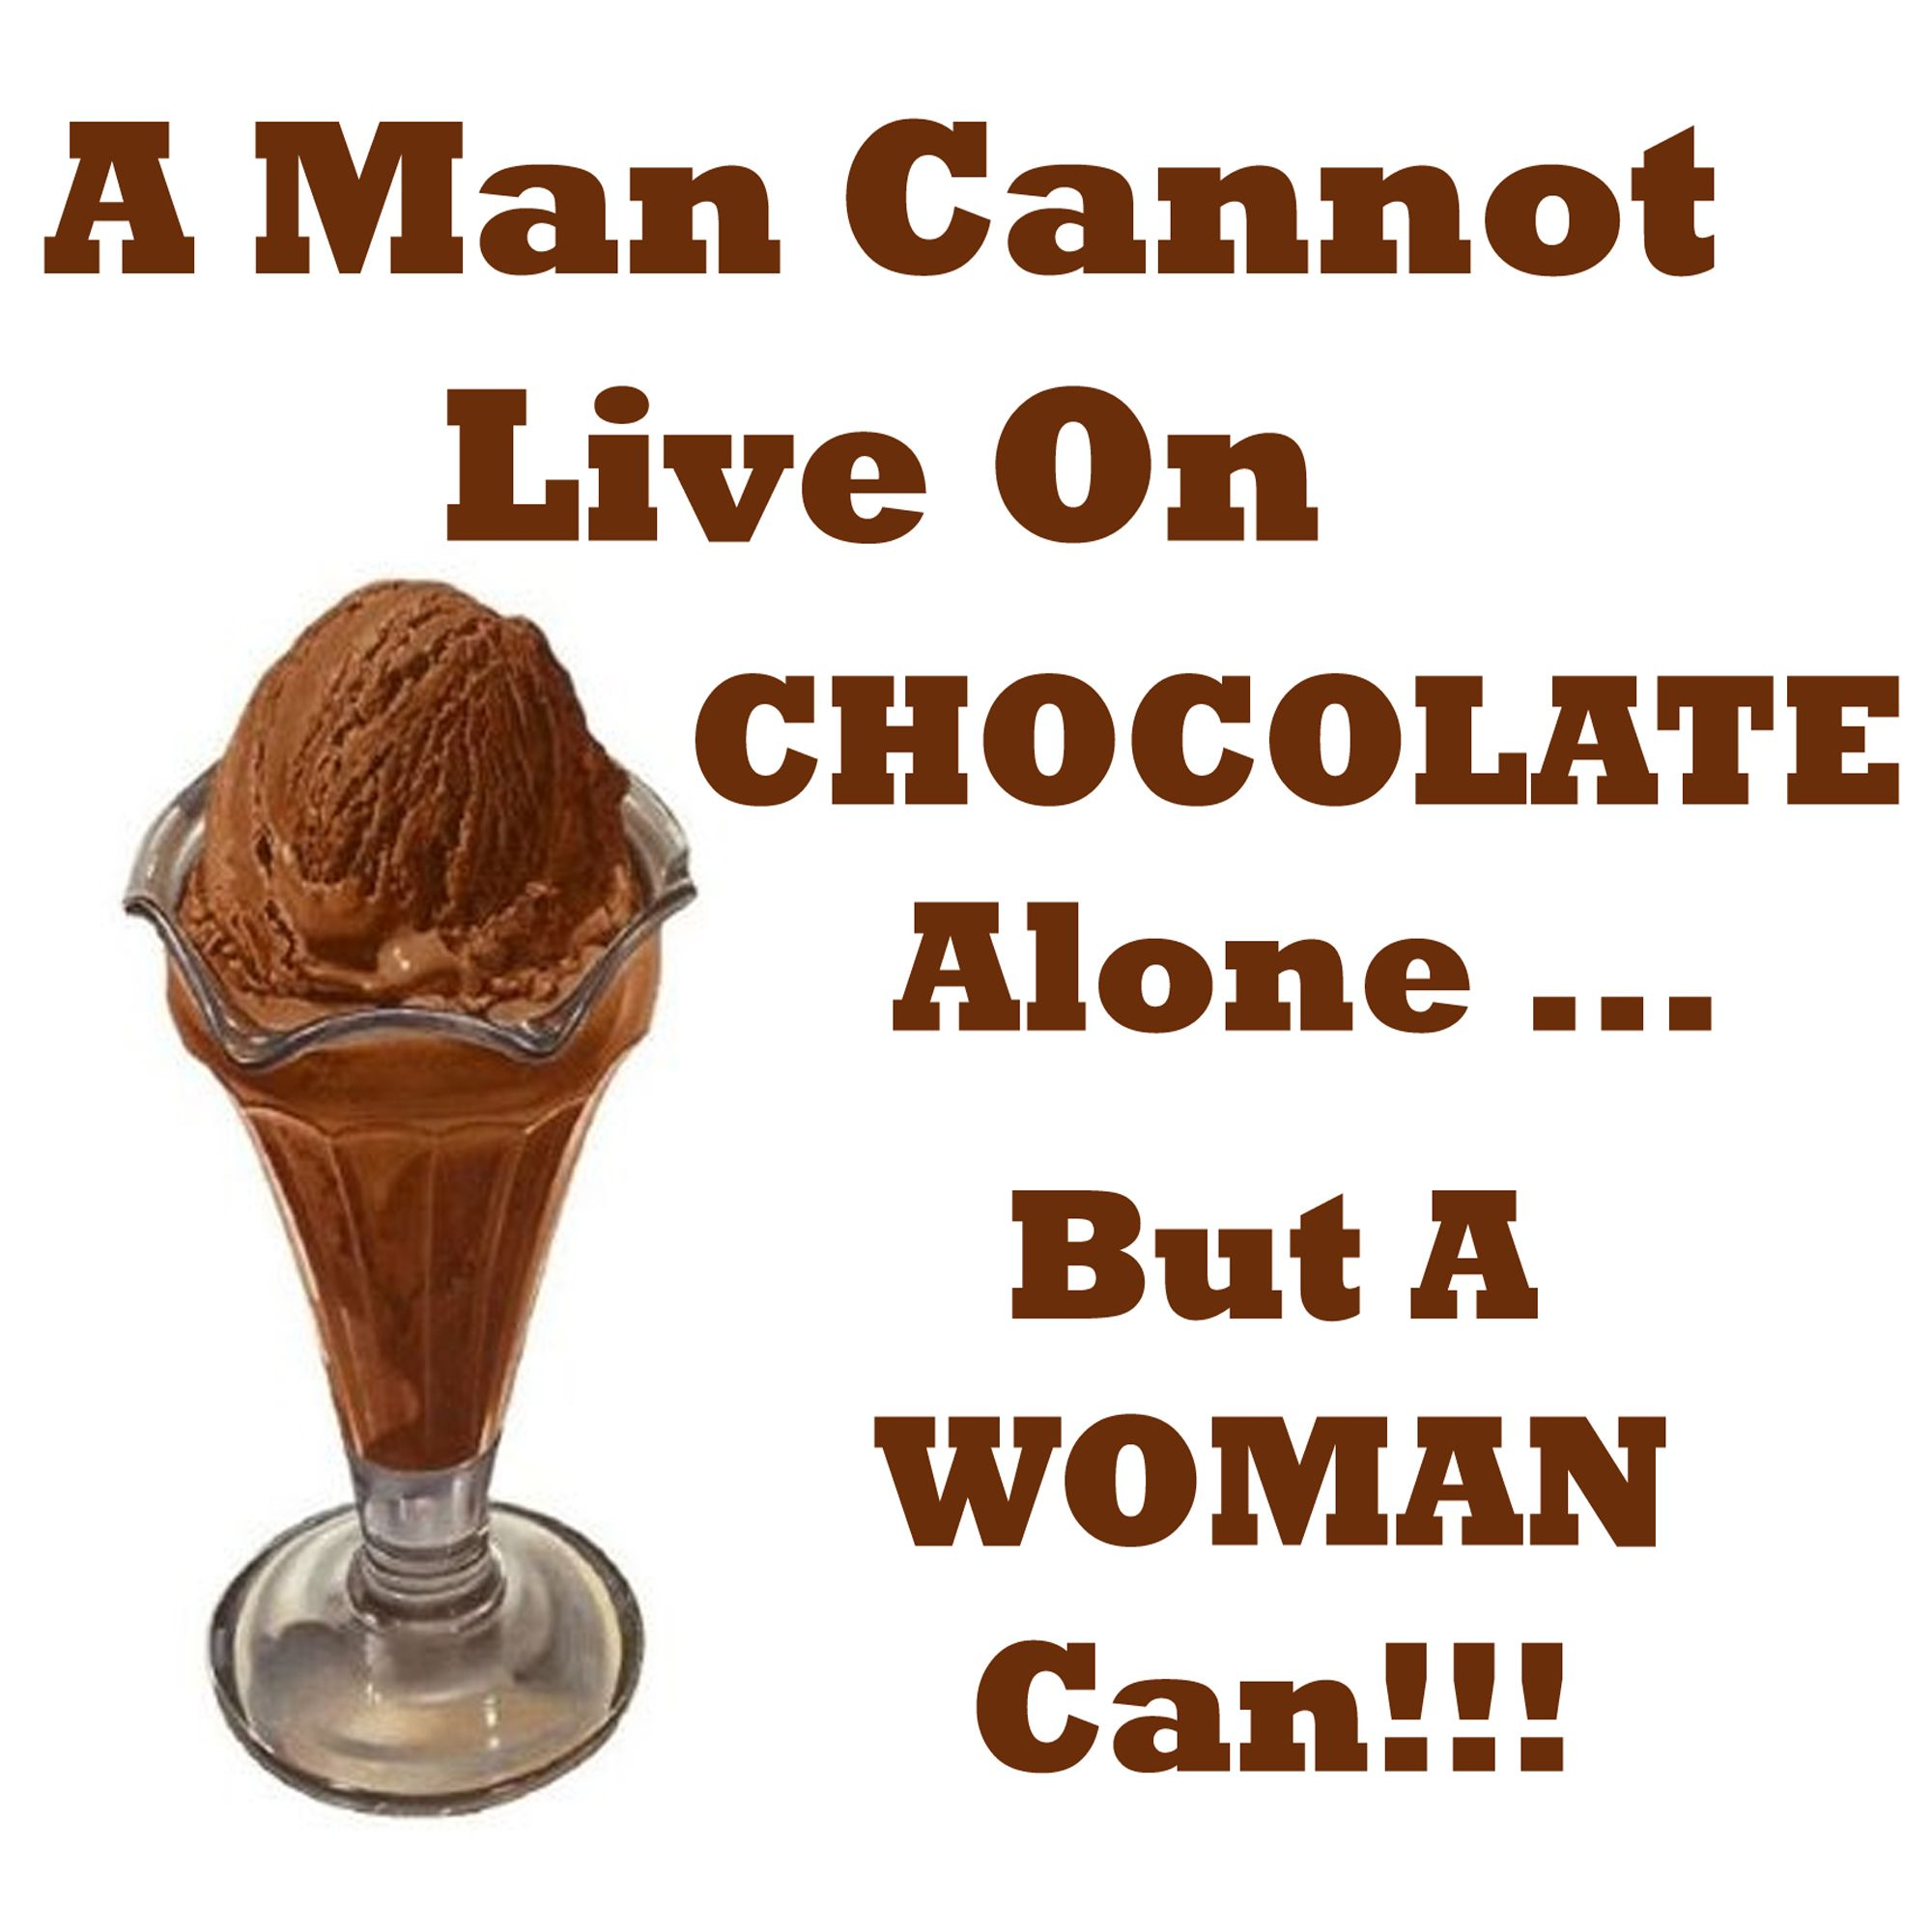 A man cannot live on chocolate alone...but a woman CAN ...